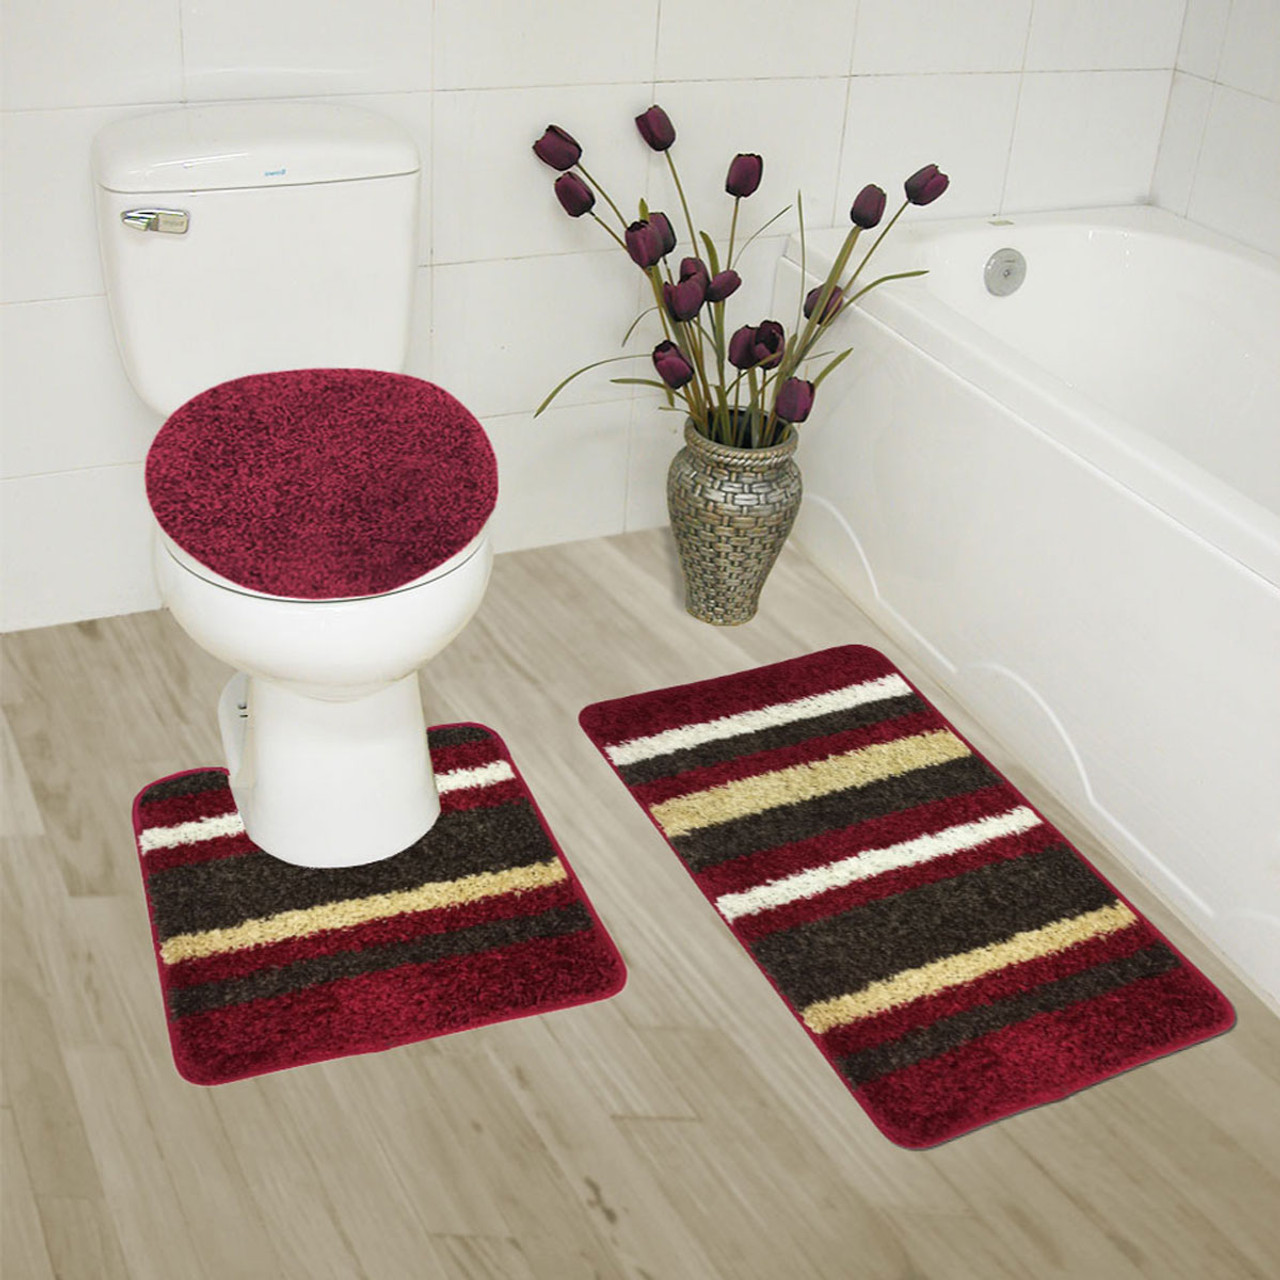 bathroom rug set 3 pc, bath rug, contour rug, lid cover, high pile